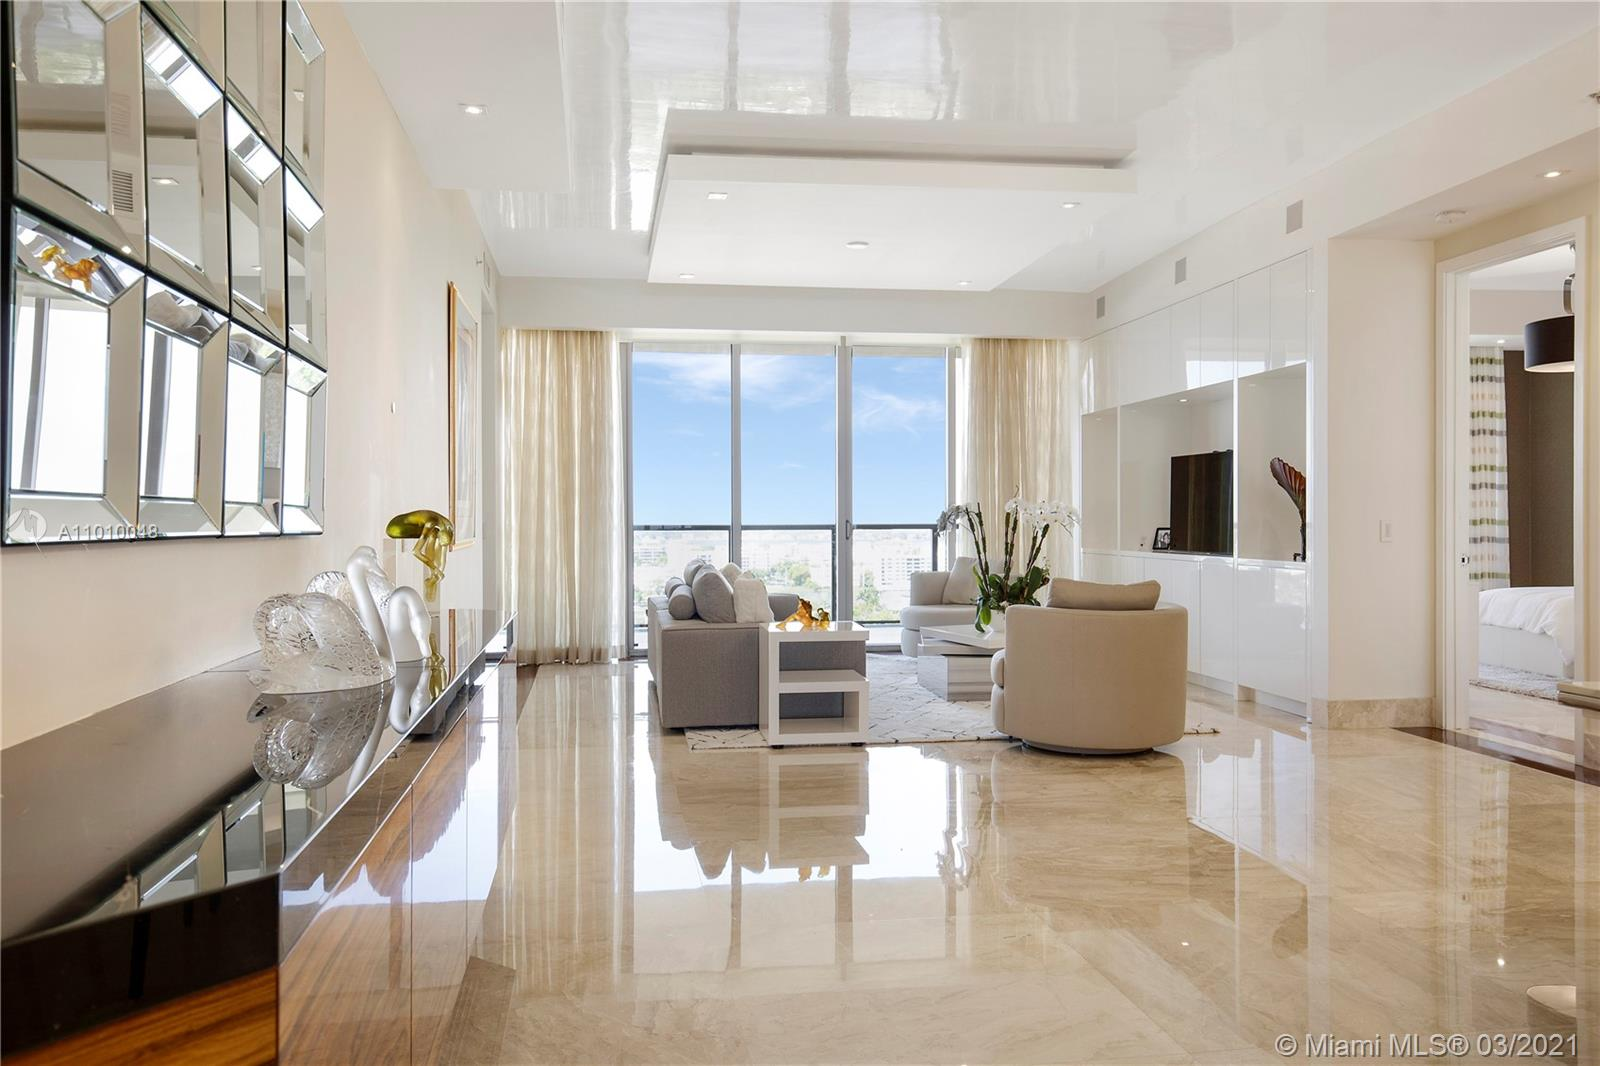 Immaculate oceanfront residence at the iconic St. Regis Bal Harbour now available for those looking for a great investment opportunity. No expense was spared. Exquisitely furnished with attention to detail. This beachfront paradise residence features 3 spacious bedroom plus 3 & 1/2 bathrooms, stunning direct ocean views plus breathtaking sunset views of intracoastal /city skyline. Meticulous designed and high end finishes throughout with top-of-the-line appliances. A true turn-key deal for your most discerning client. Tenant occupied. Best deal at St. Regis! Easy to show-please see broker's remarks. Click on the virtual tour link for a tridimensional view. See Broker's remarks for showing instructions.